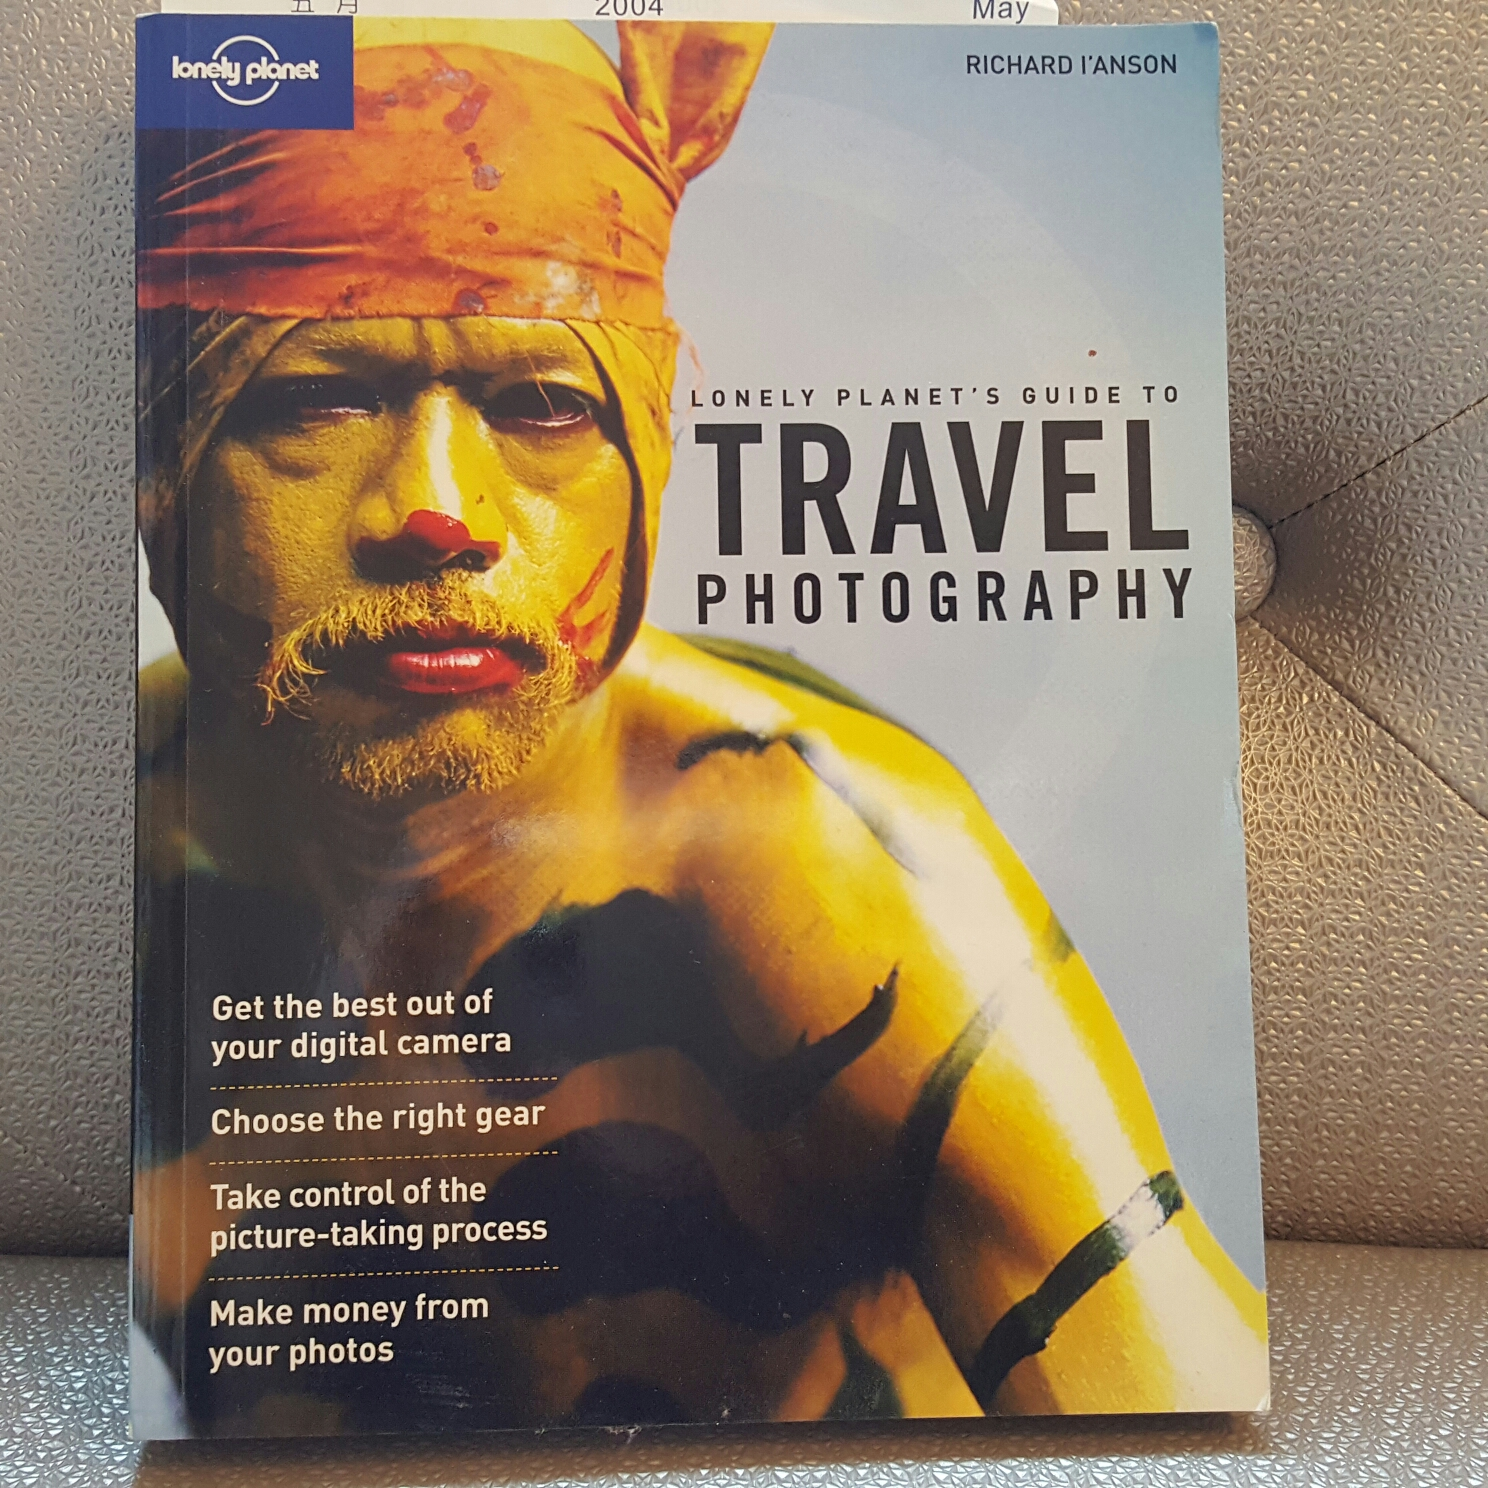 Lonely planet's guide to travel photography image